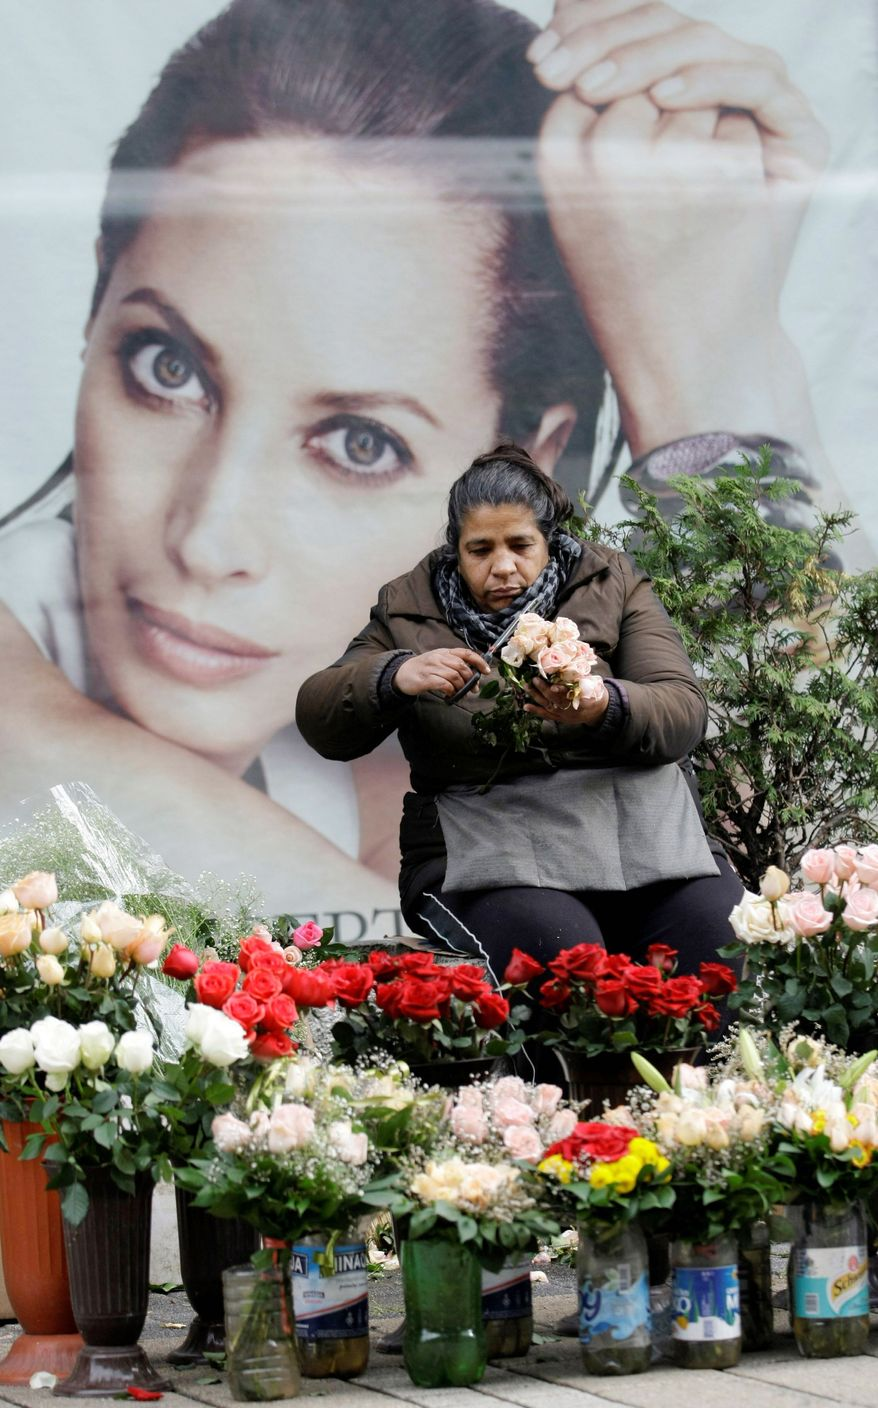 A Roma woman arranges flowers for sale against the background of an advertisement featuring American model Christy Turlington in the street in downtown Belgrade, the Serbian capital. Serbia has made some important steps on its way toward joining the European Union and breaking up with the wartime past. (Associated Press)